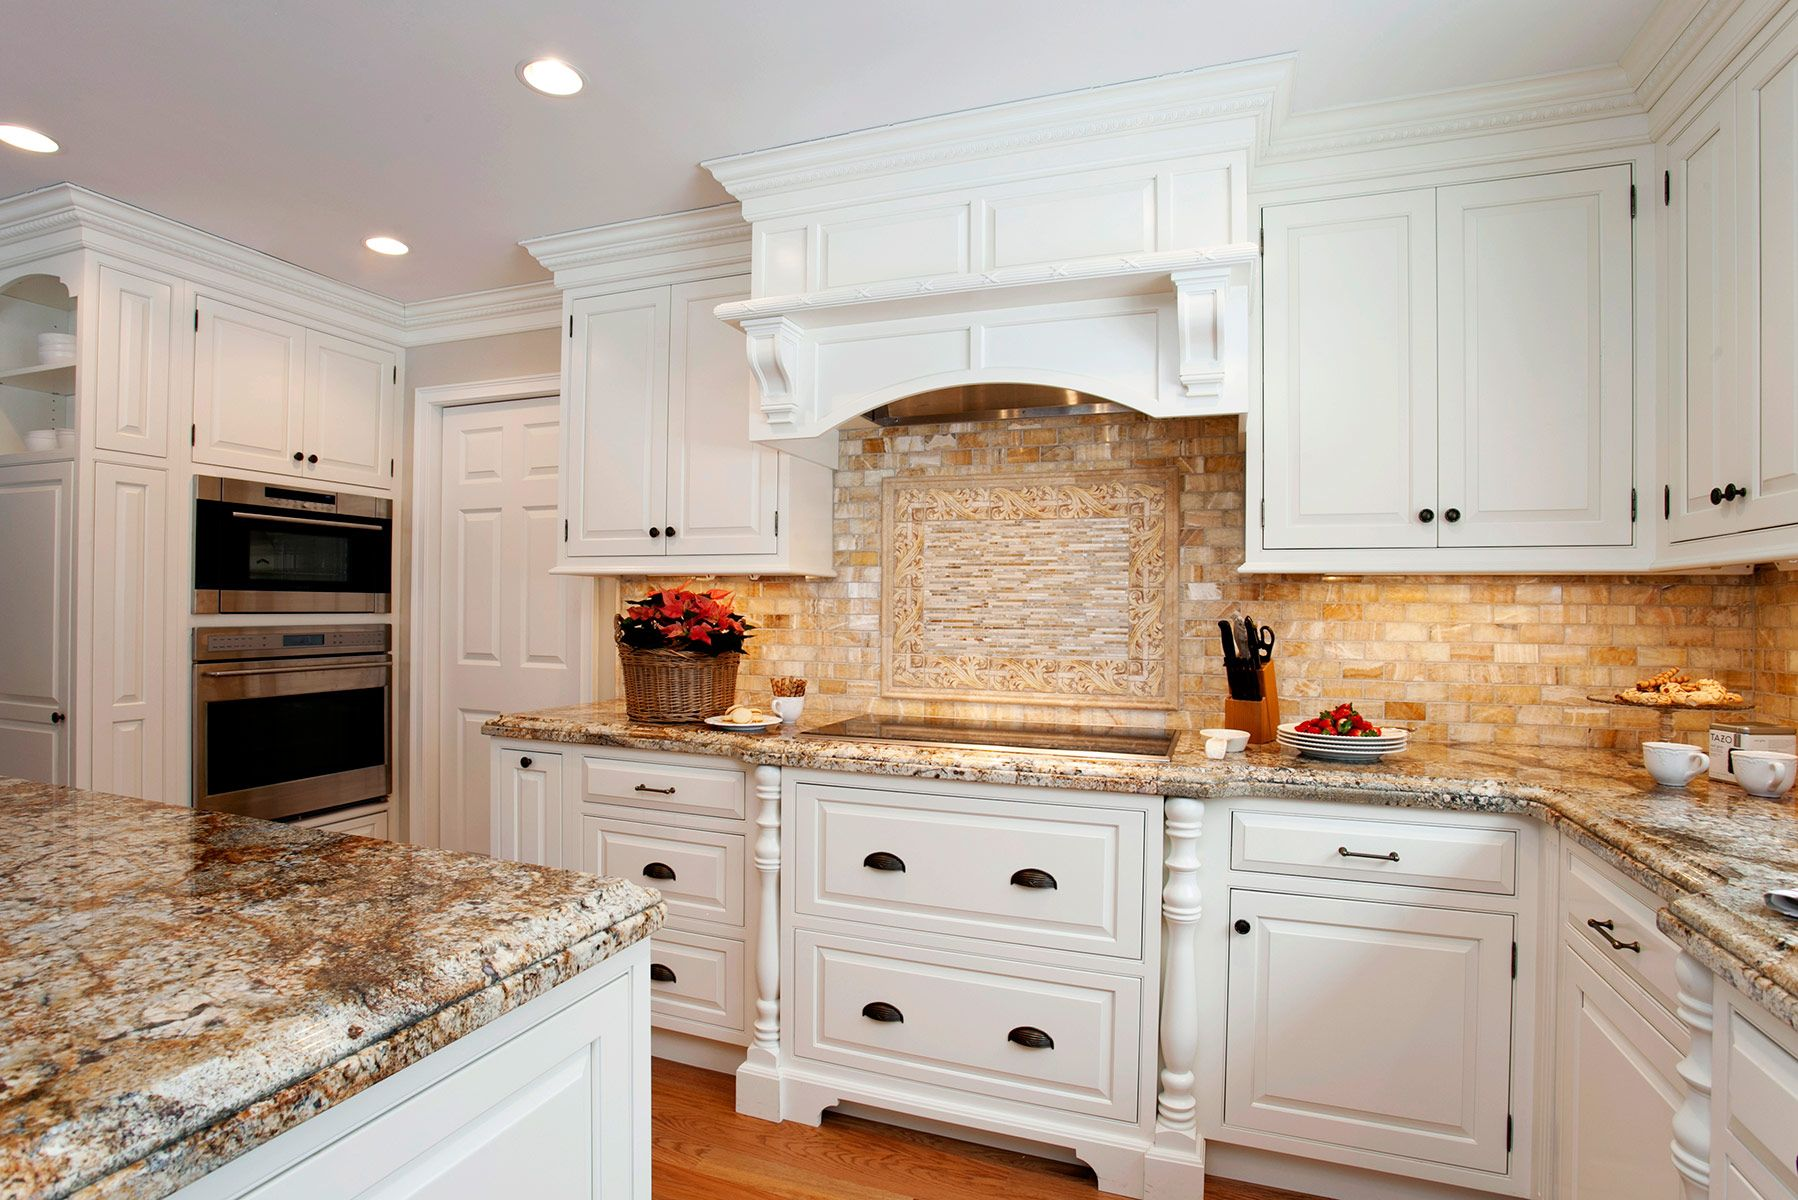 Pin On The Kitchens You Love